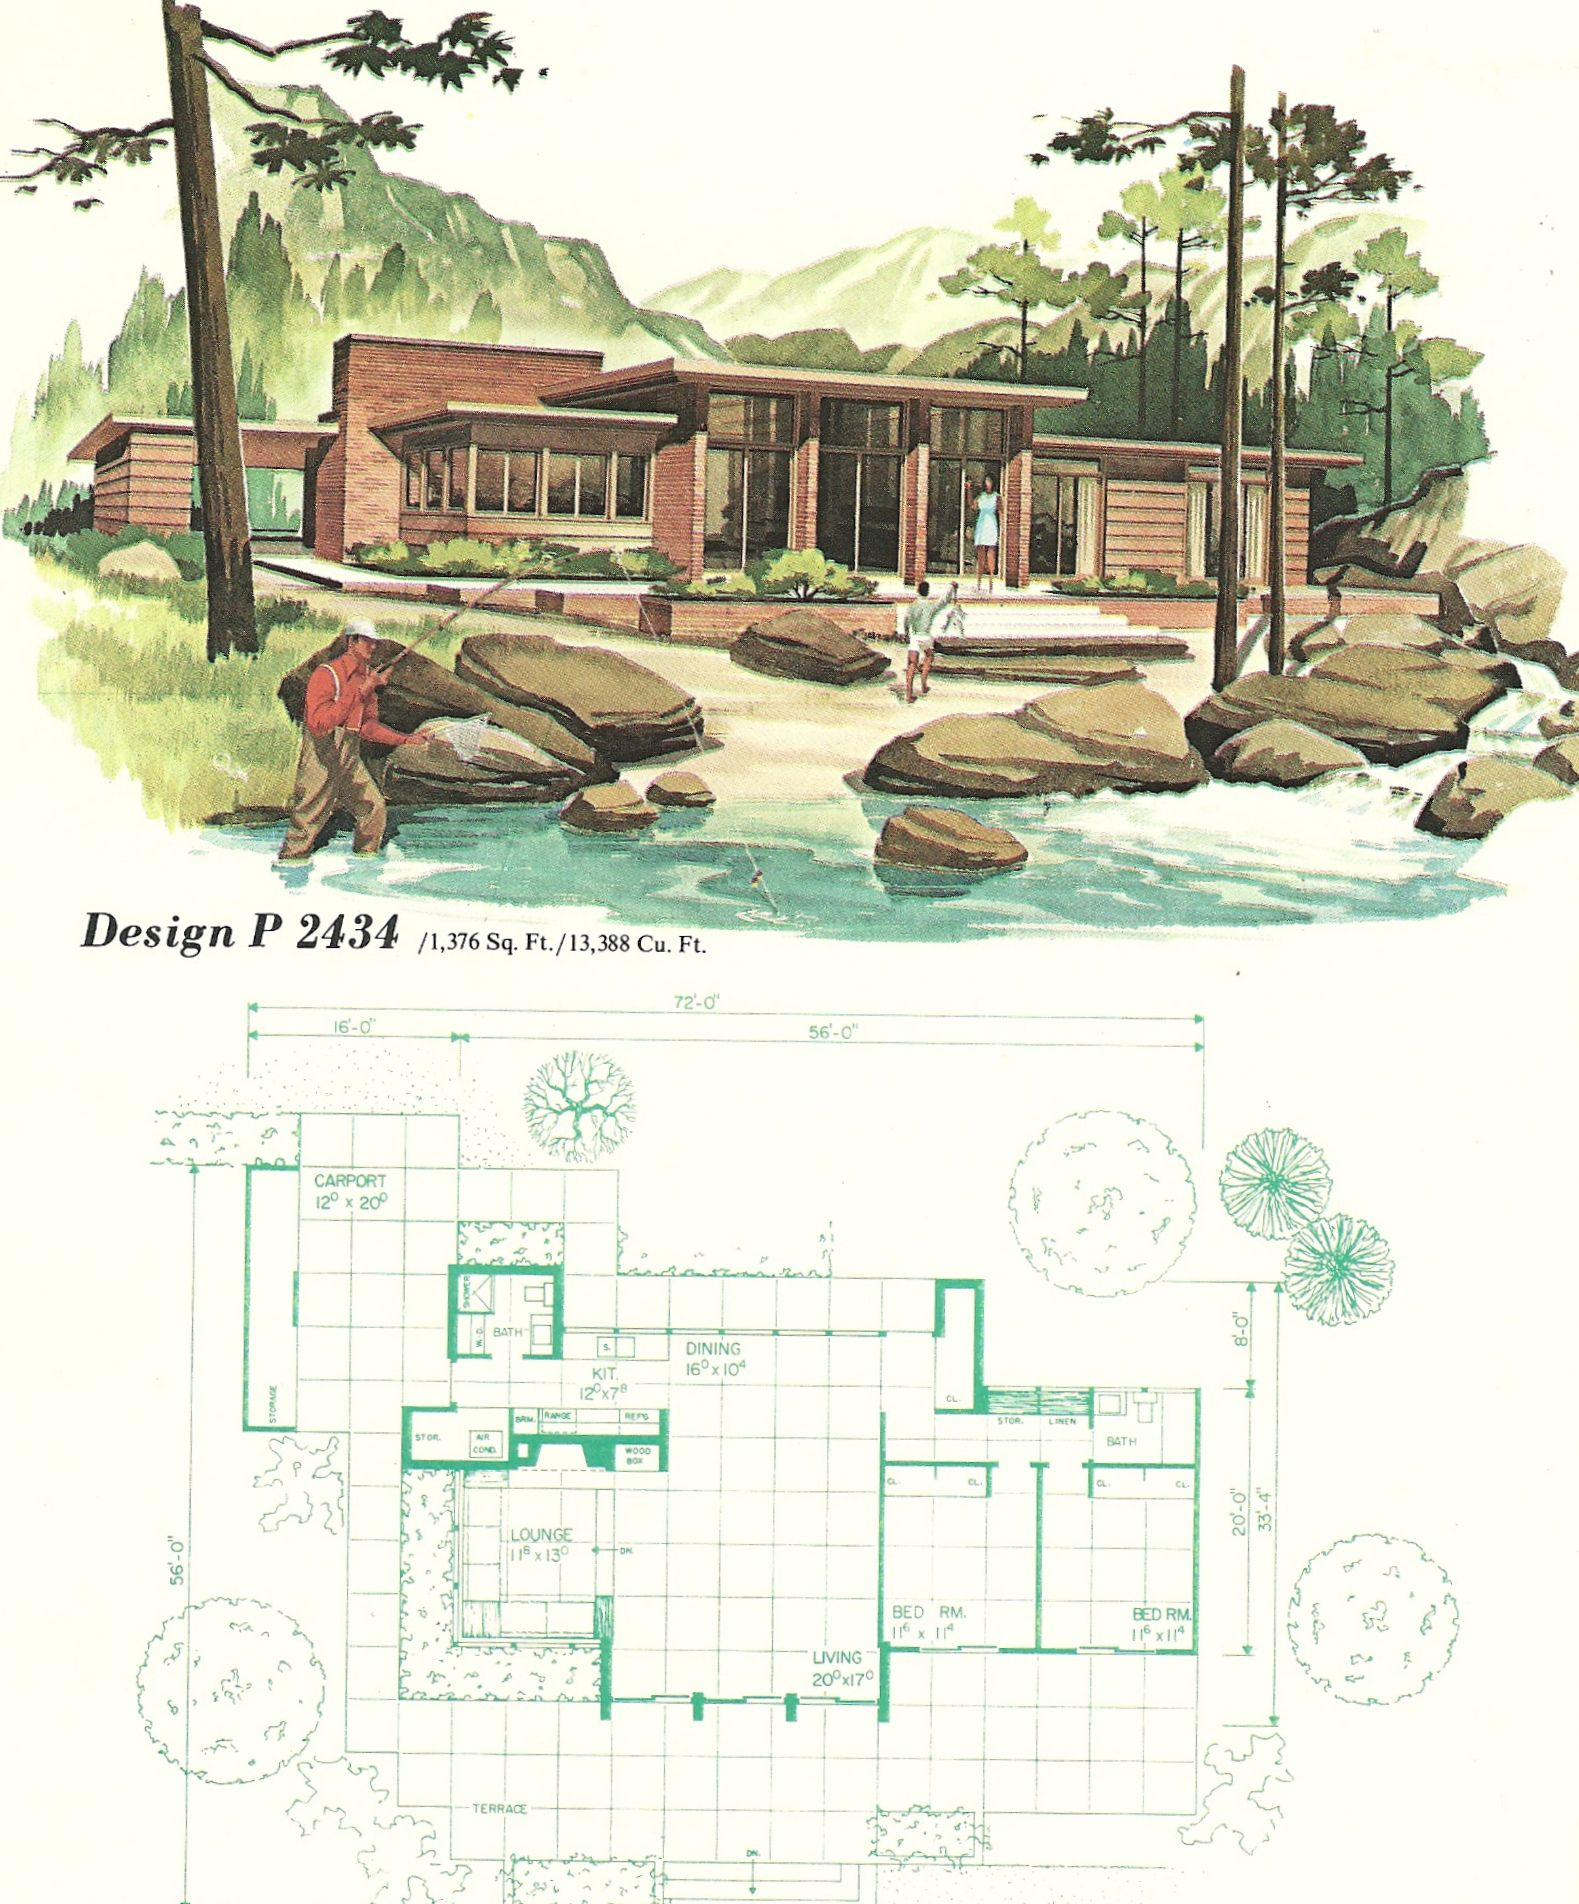 Vintage House Plans, vacation homes, 1960s | Modern floor ...